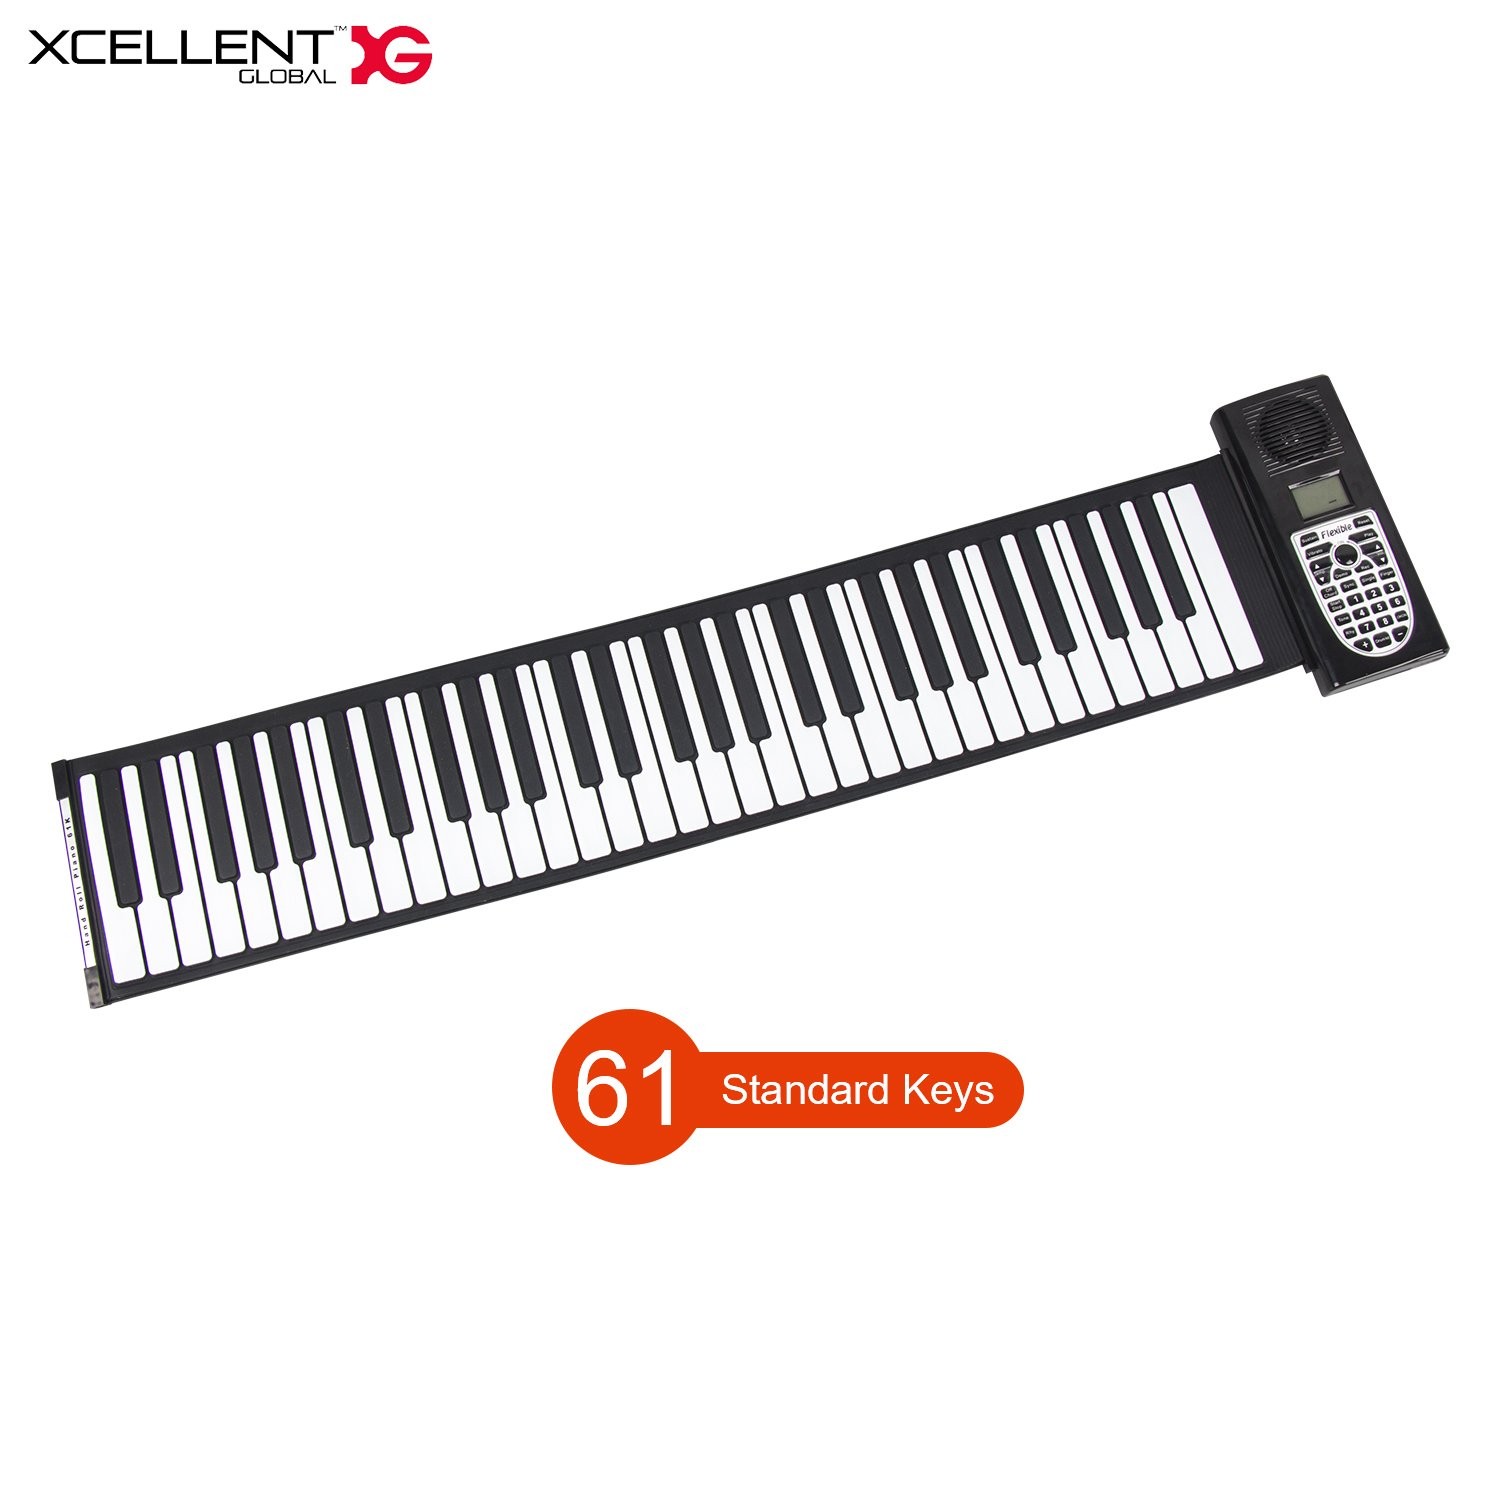 Xcellent Global Portable Foldable 61-Keys Piano MIDI Keyboard Flexible Soft Silicone 128 tones, Recordable, USB or Battery Power AV034 F-AV034